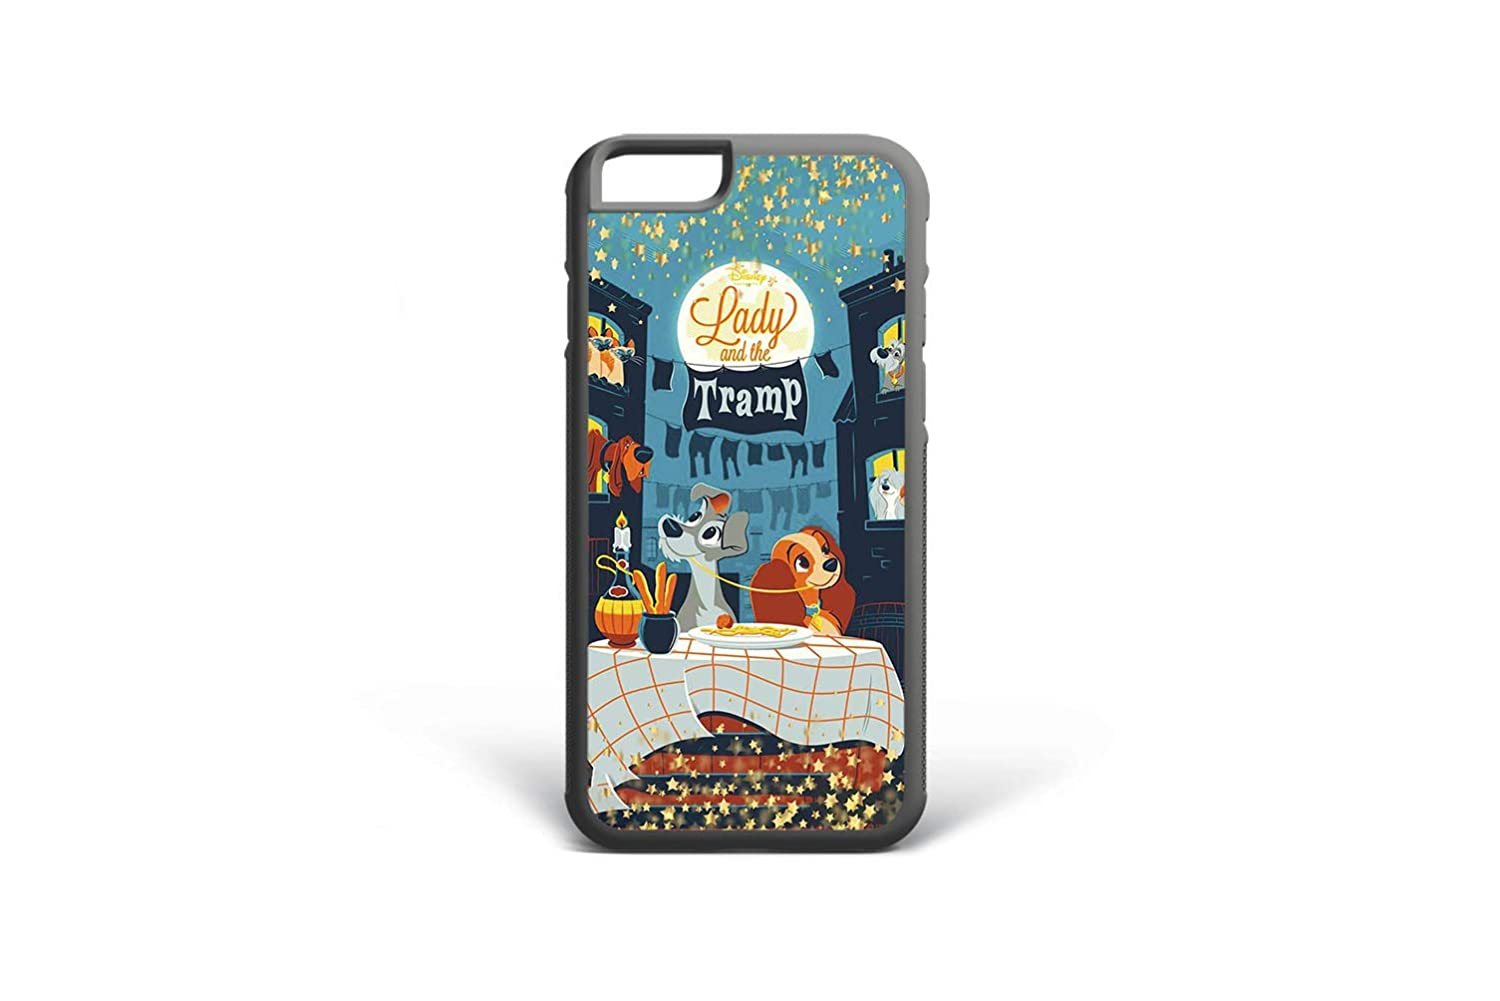 Koldan Lady and the Tramp iPhone XS Max Case iPhone X XR 7 Plus Disney 7 8 iPhone 8 Plus 6 6S Plus 5 5S SE Restaurant Samsung S8 Plus S9 Plus Cute Dogs Samsung Note 8 S8 S9 Note 9 S6 S7 Edge 2DaO460